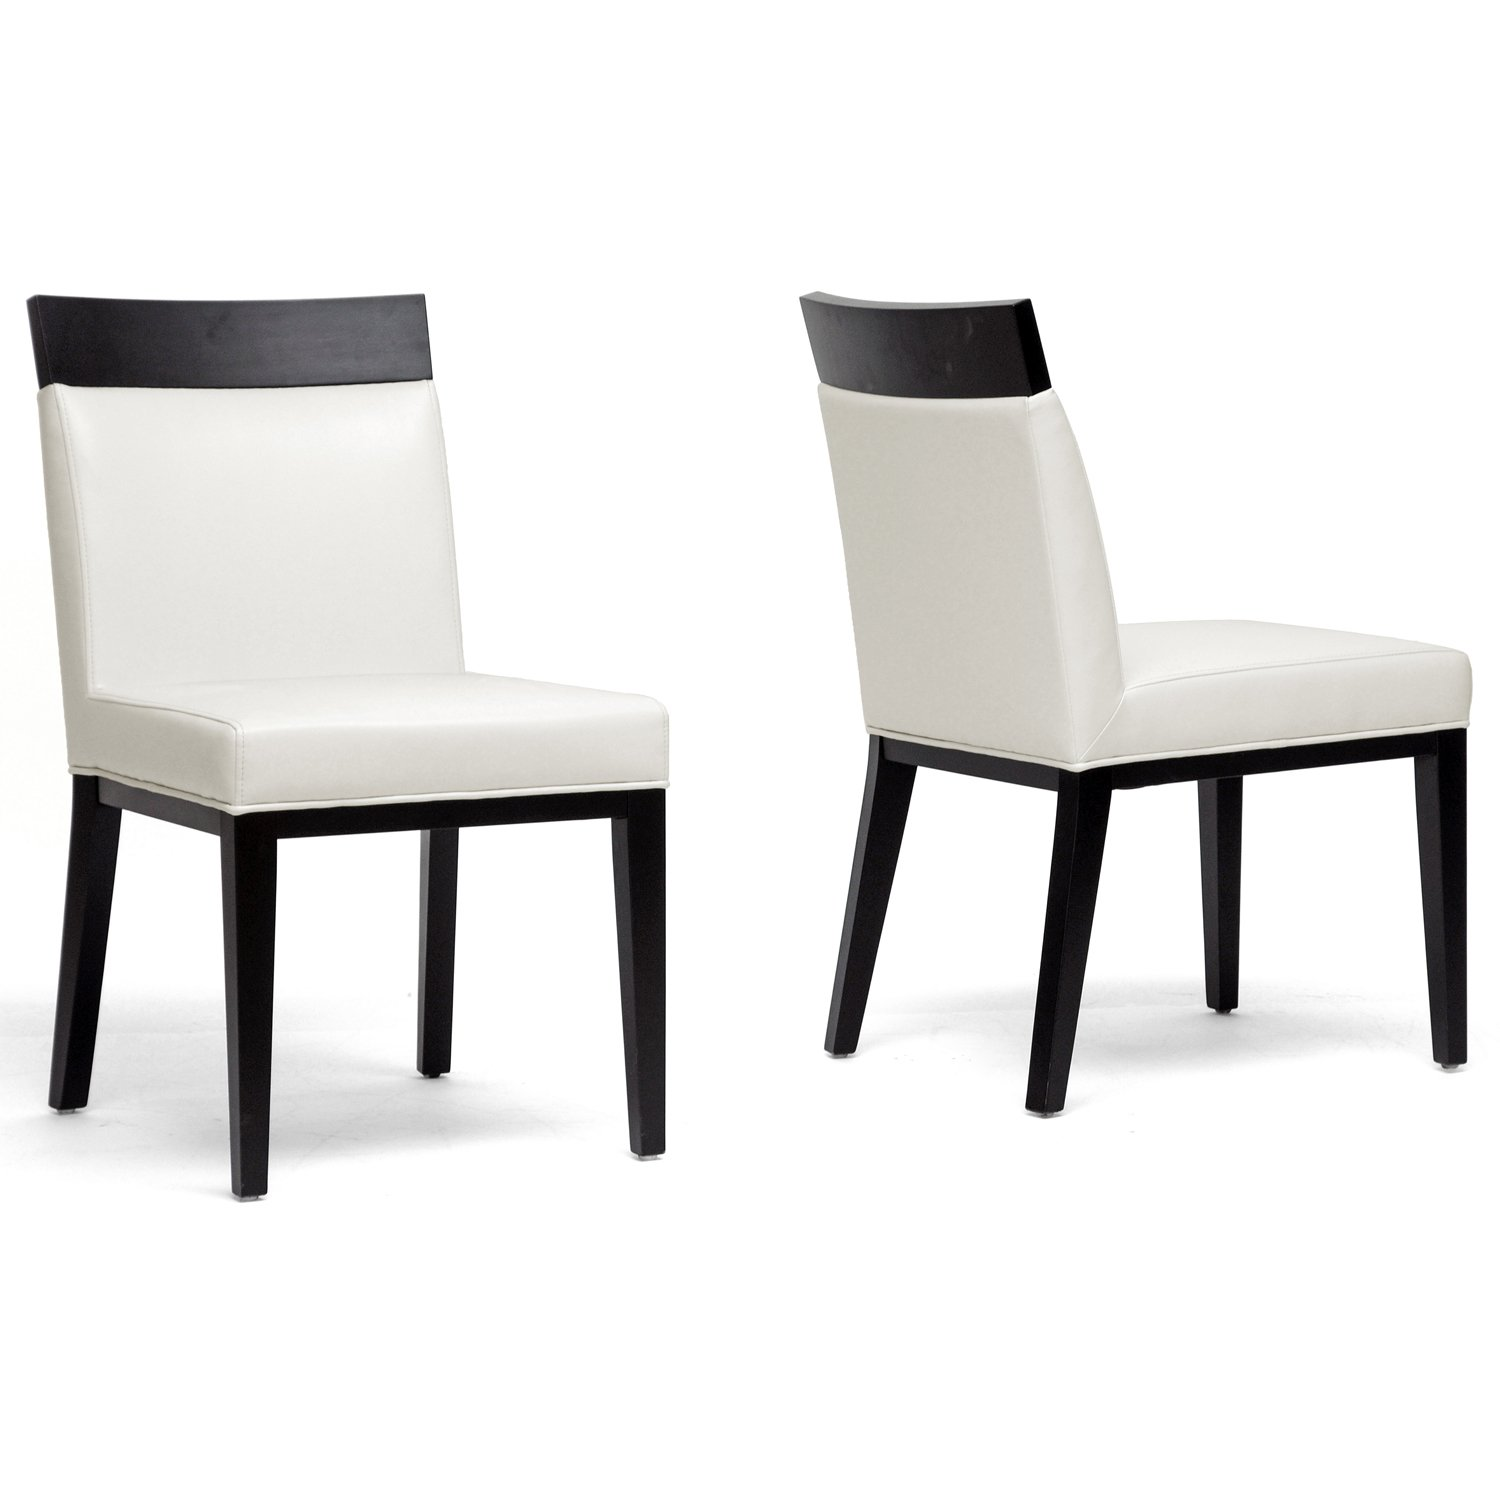 amazoncom baxton studio clymene black wood and cream leather modern dining chair set of 2 chairs